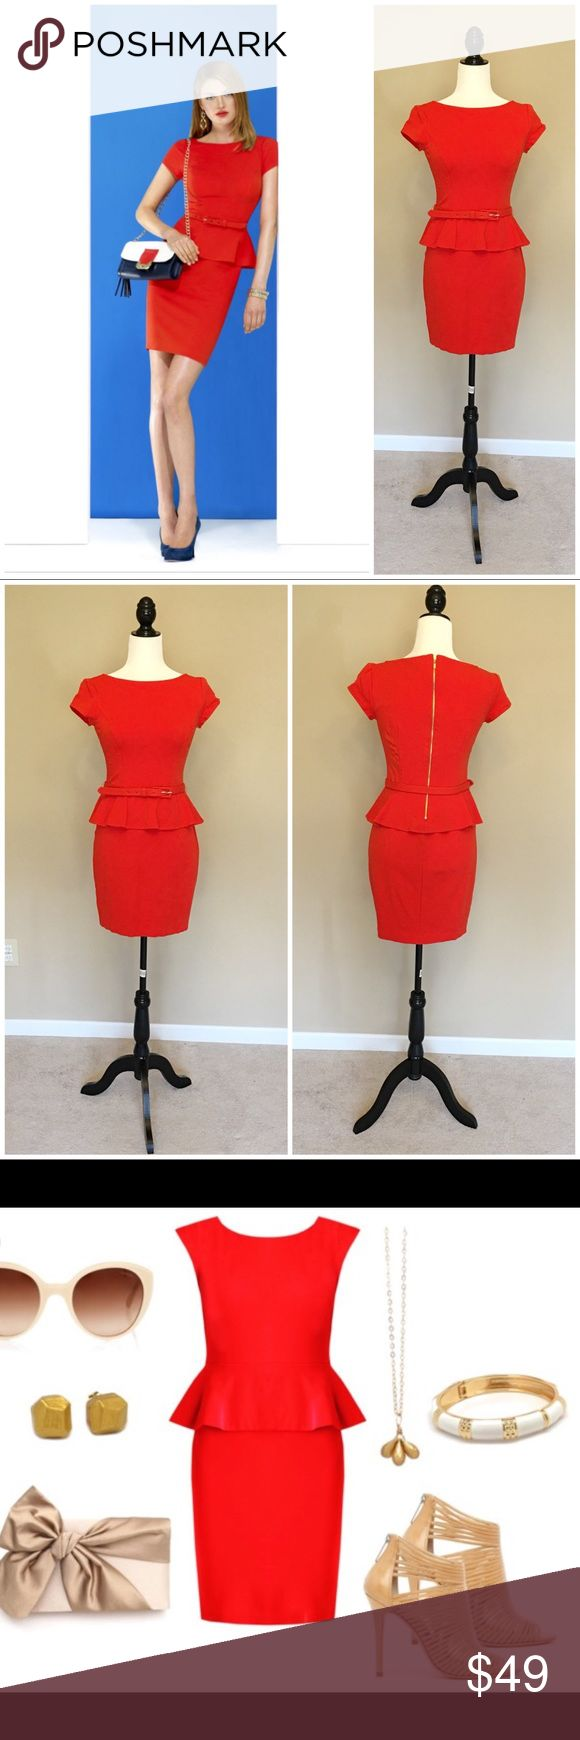 CACHE Red Peplum Dress Gorgeous red Peplum dress featuring short sleeves, a removable belt, gold back zipper! Perfect for a special occasion & holiday parties! I've included a styling image of the dress! Cache Dresses